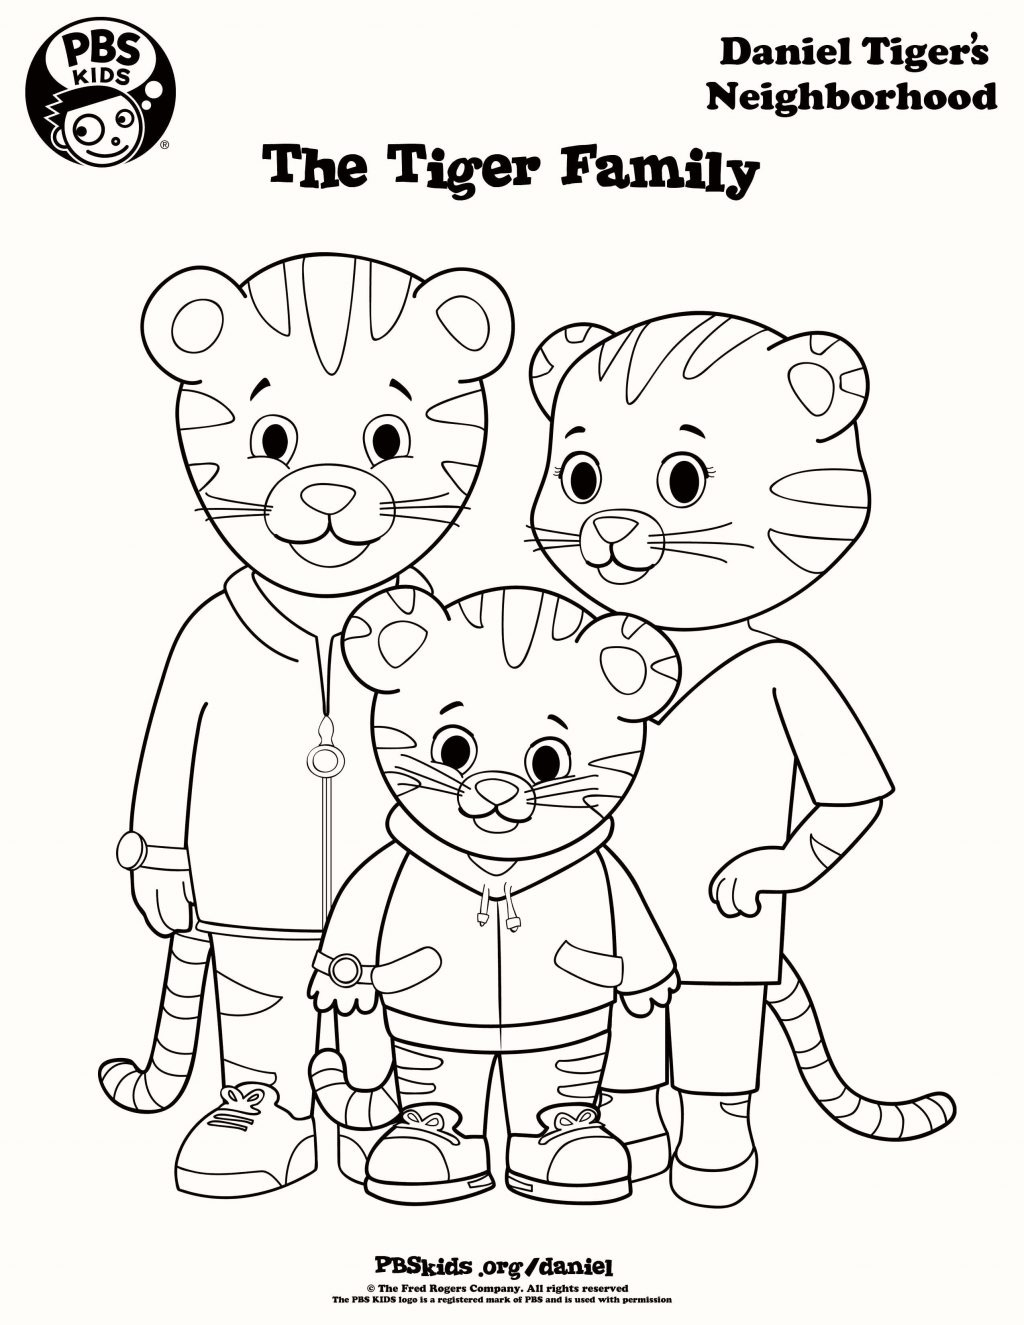 Coloring Pages ~ Daniel Tiger Coloring Pages Printable Elena New - Free Printable Daniel Tiger Coloring Pages